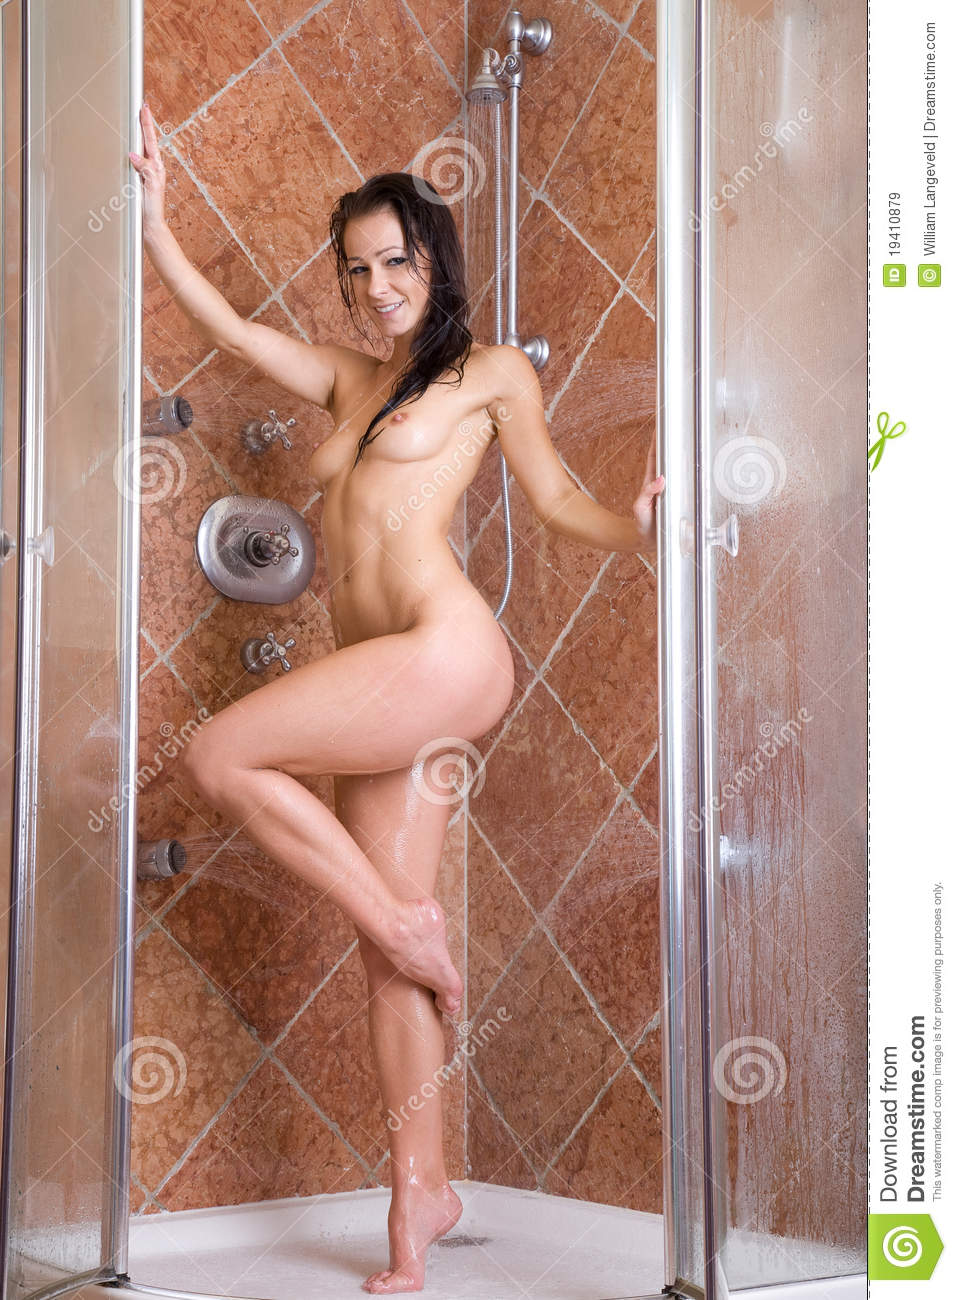 Hot girls in the bathroom shower